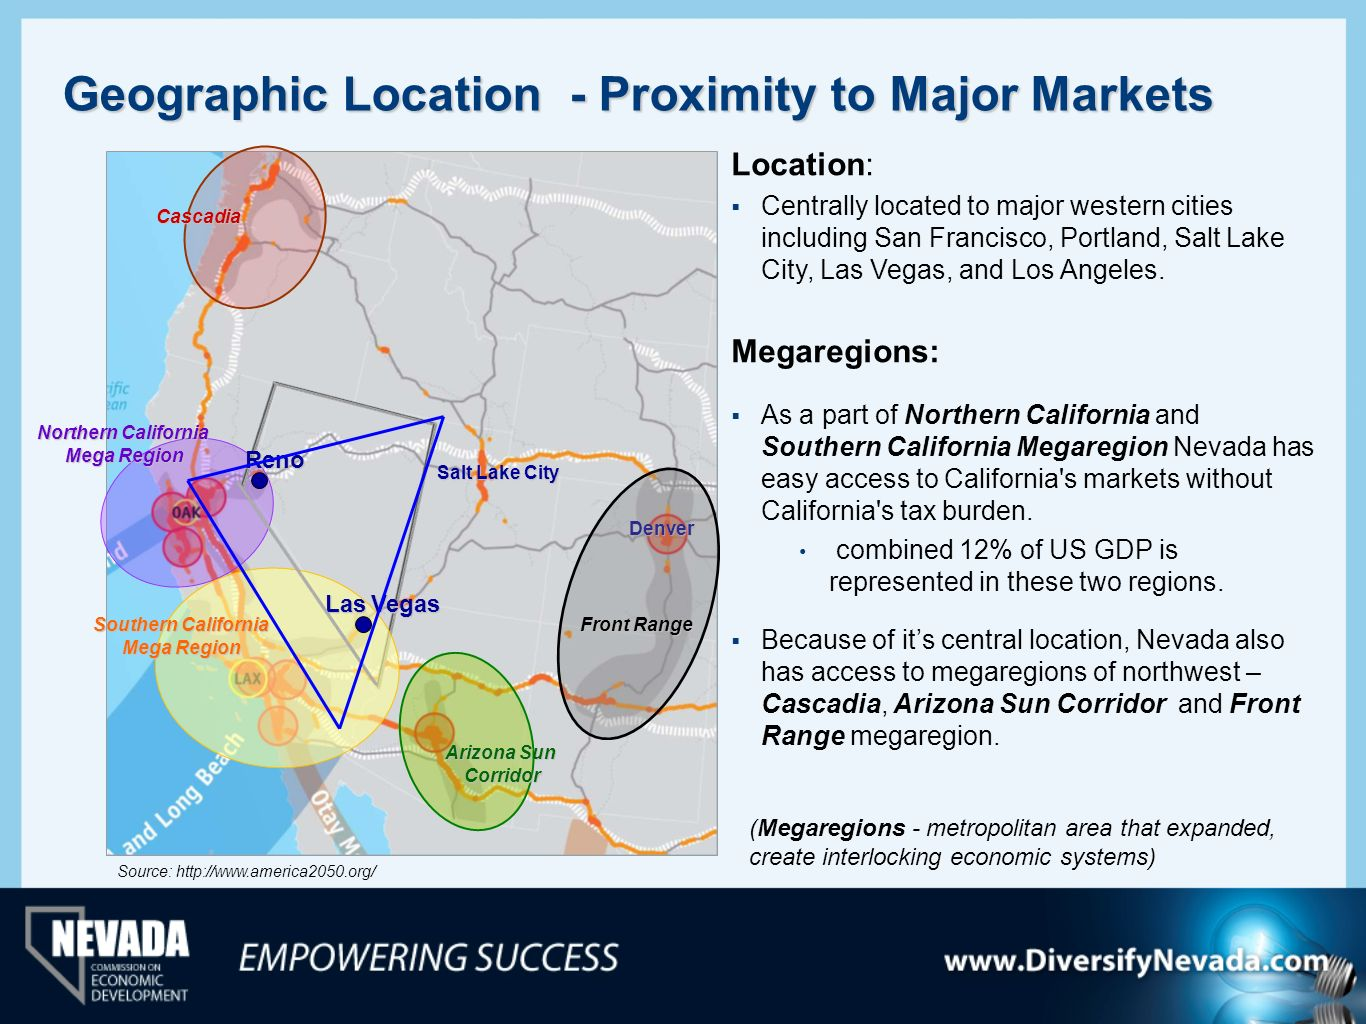 Geographic Location - Proximity to Major Markets